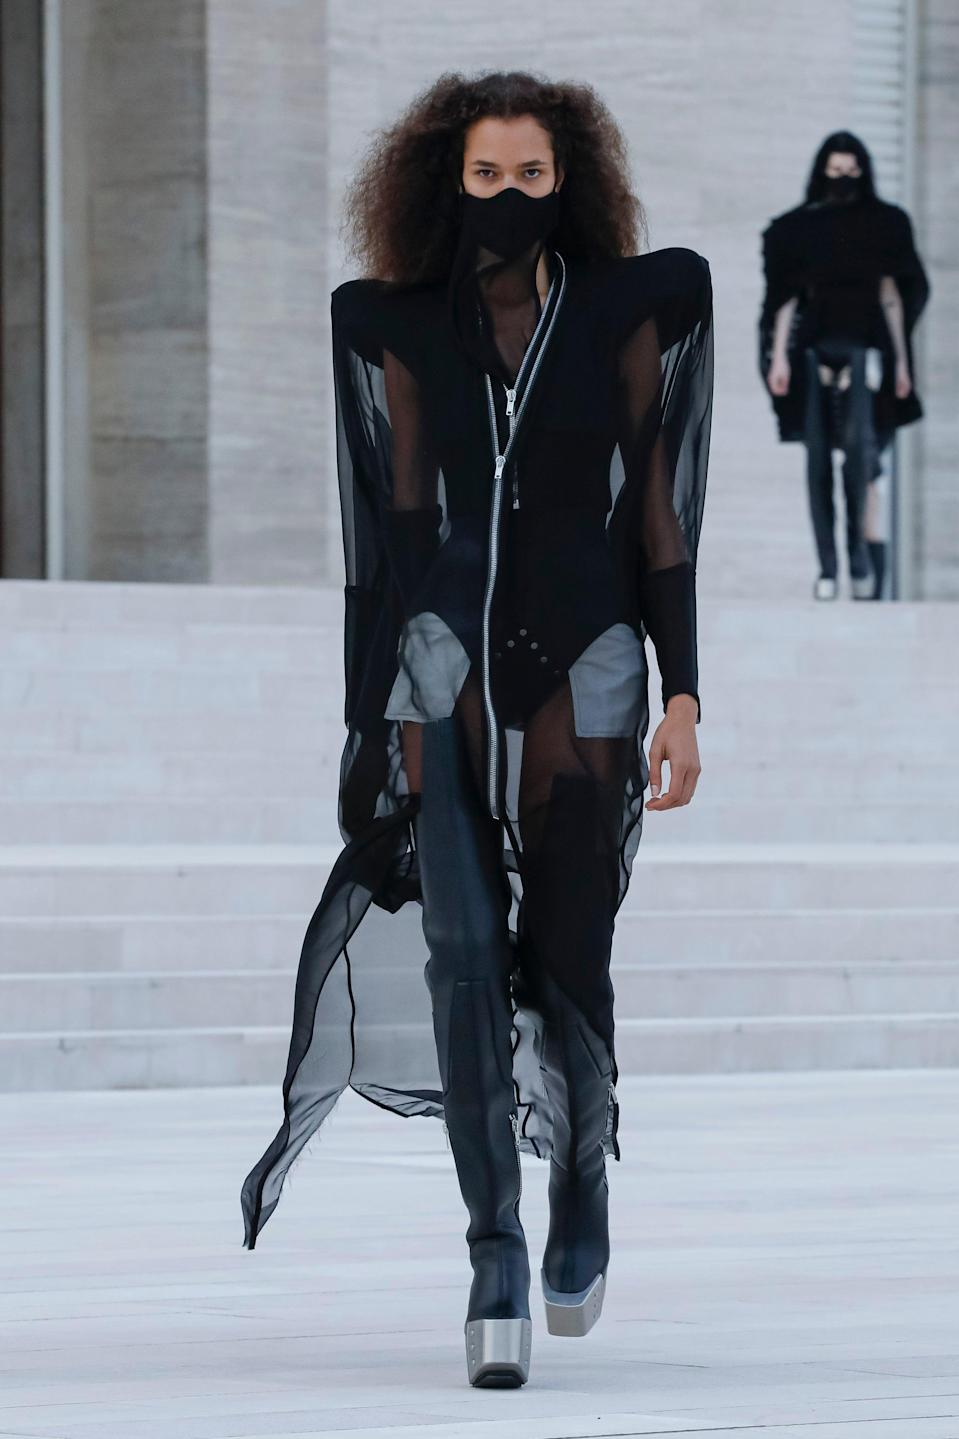 "<h2>Dark Times<br></h2><br>Brands like Rick Owens, Marine Serre, and Maison Margiela are known for their somewhat dystopian aesthetics, but, this season, things felt especially dark at their shows. The same went for Balenciaga and ROKH, too. And it should've. Things aren't going too well for the world right now, and while most designers this season spent their time in quarantine designing colourful, escapist collections full of bright prints and <a href=""https://www.refinery29.com/en-gb/women-loungewear-sets"" rel=""nofollow noopener"" target=""_blank"" data-ylk=""slk:high fashion loungewear"" class=""link rapid-noclick-resp"">high fashion loungewear</a>, we knew we could count on Demna Gvasalia, Rick Owens, and John Galliano, among others, to be straight with us — but to also do so in an exceptionally beautiful way. <br><br><em>Rick Owens</em><span class=""copyright"">Photo: OWENSCORP.</span>"